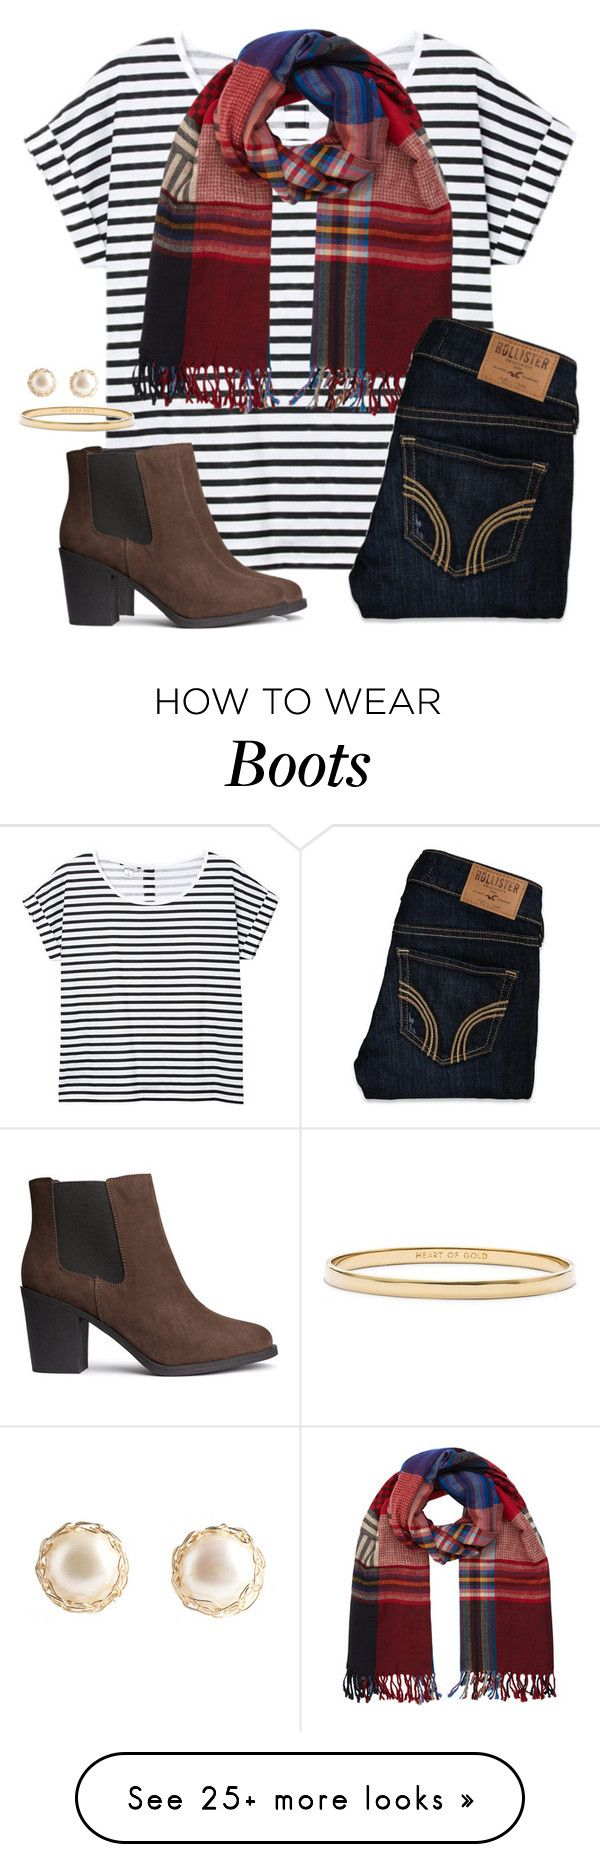 """A is for Ankle boots"" by anna-watson00 on Polyvore featuring Monki, Monsoon, Hollister Co., H&M and Kate Spade"